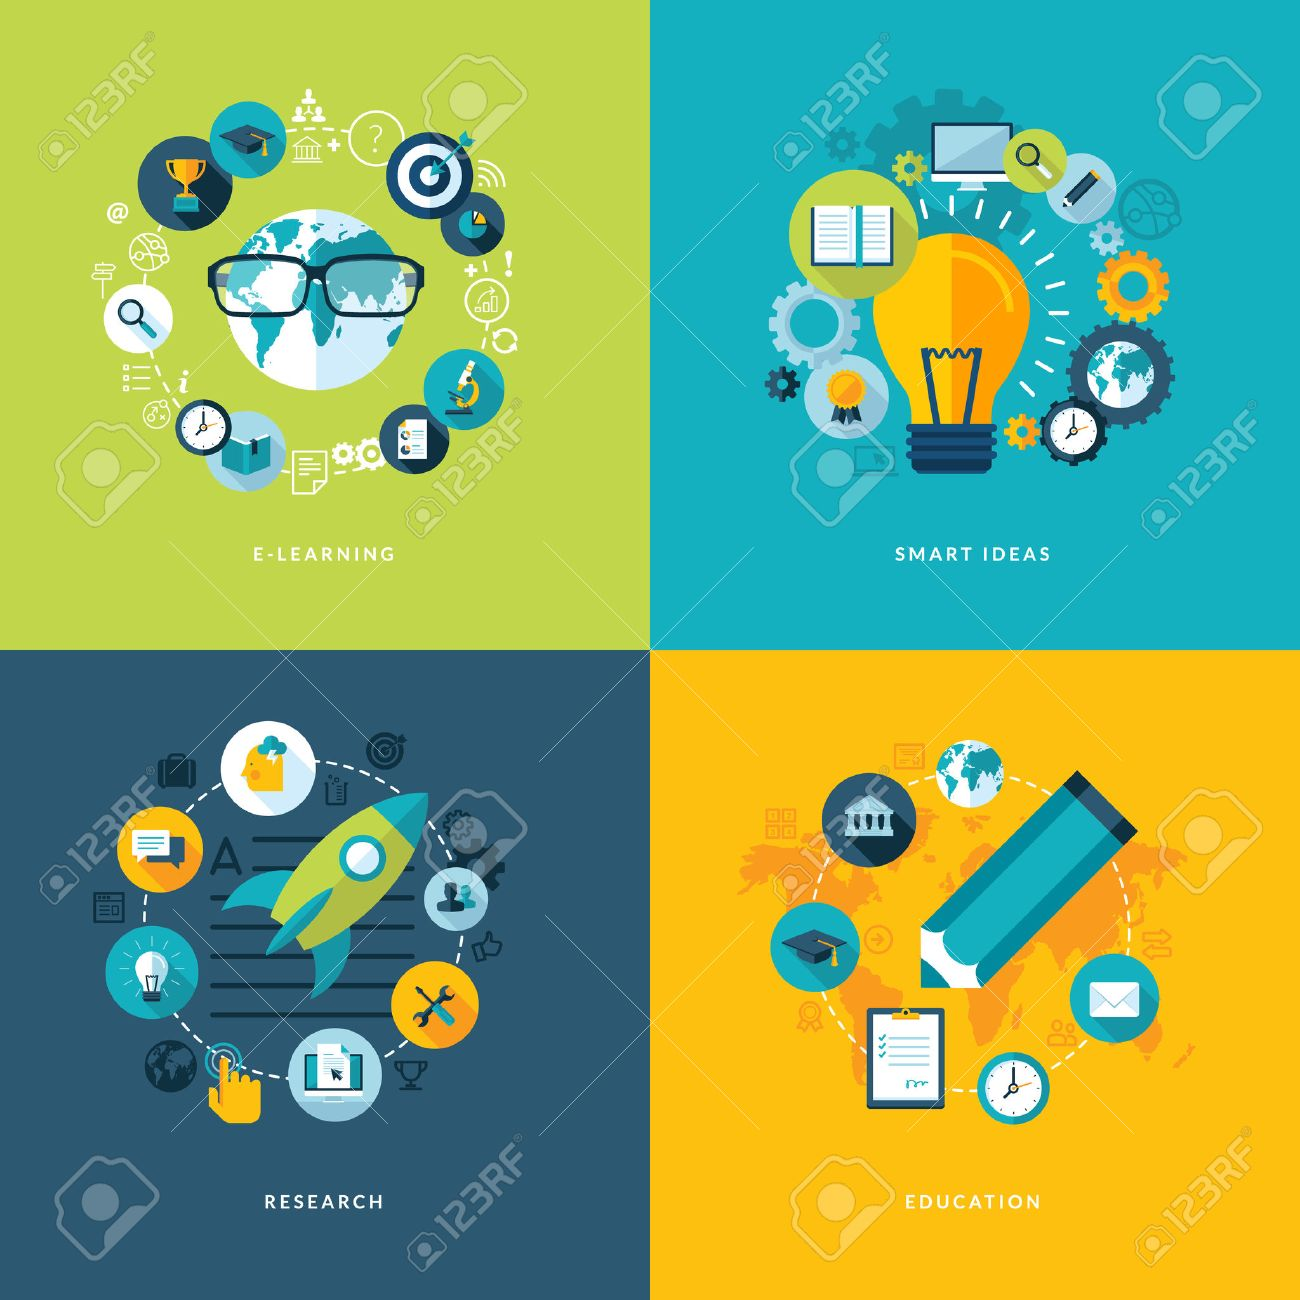 Set of flat design concept icons for education  Icons for online learning, smart ideas, research and education Stock Vector - 27119444